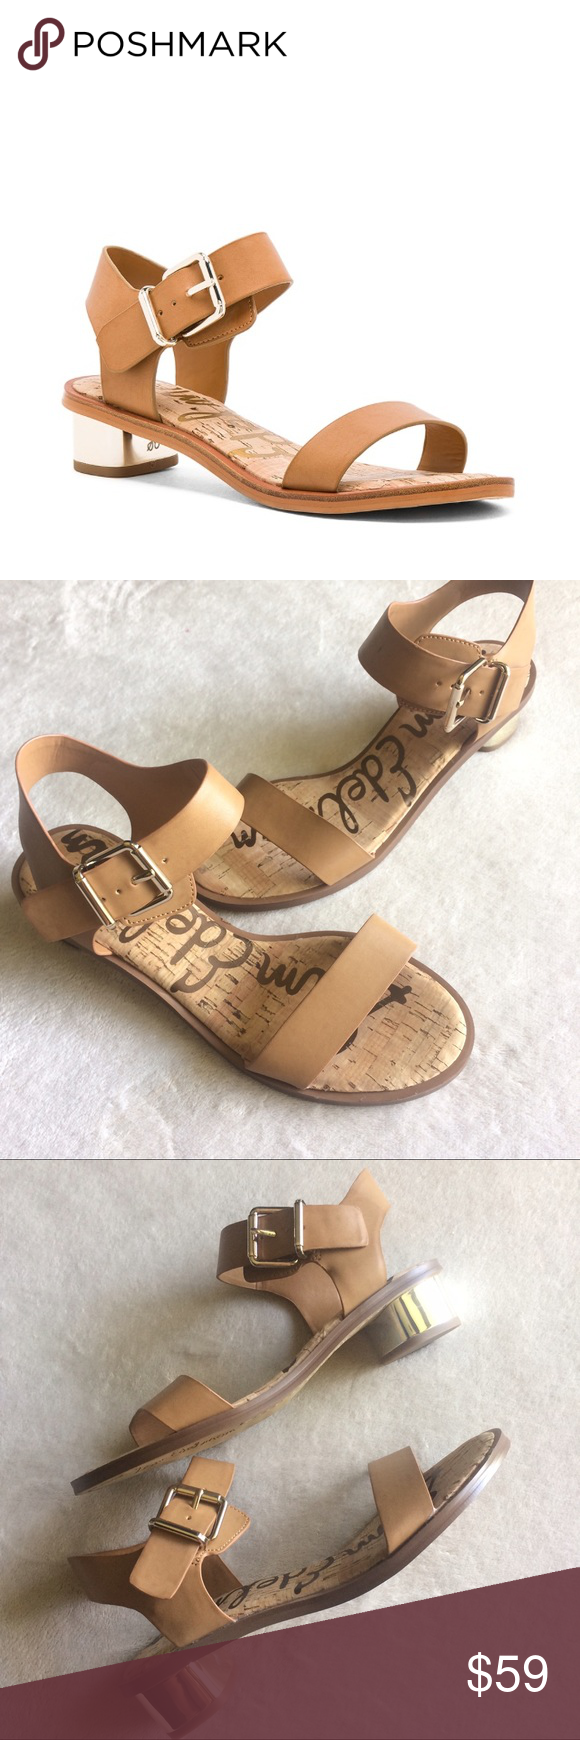 442e409910f6 Sam Edelman Trixie Block Sandal Brand new Sam Edelman Trixie block heel  buckle Sandal. A beautiful tan cognac color with gold hardware and heel.